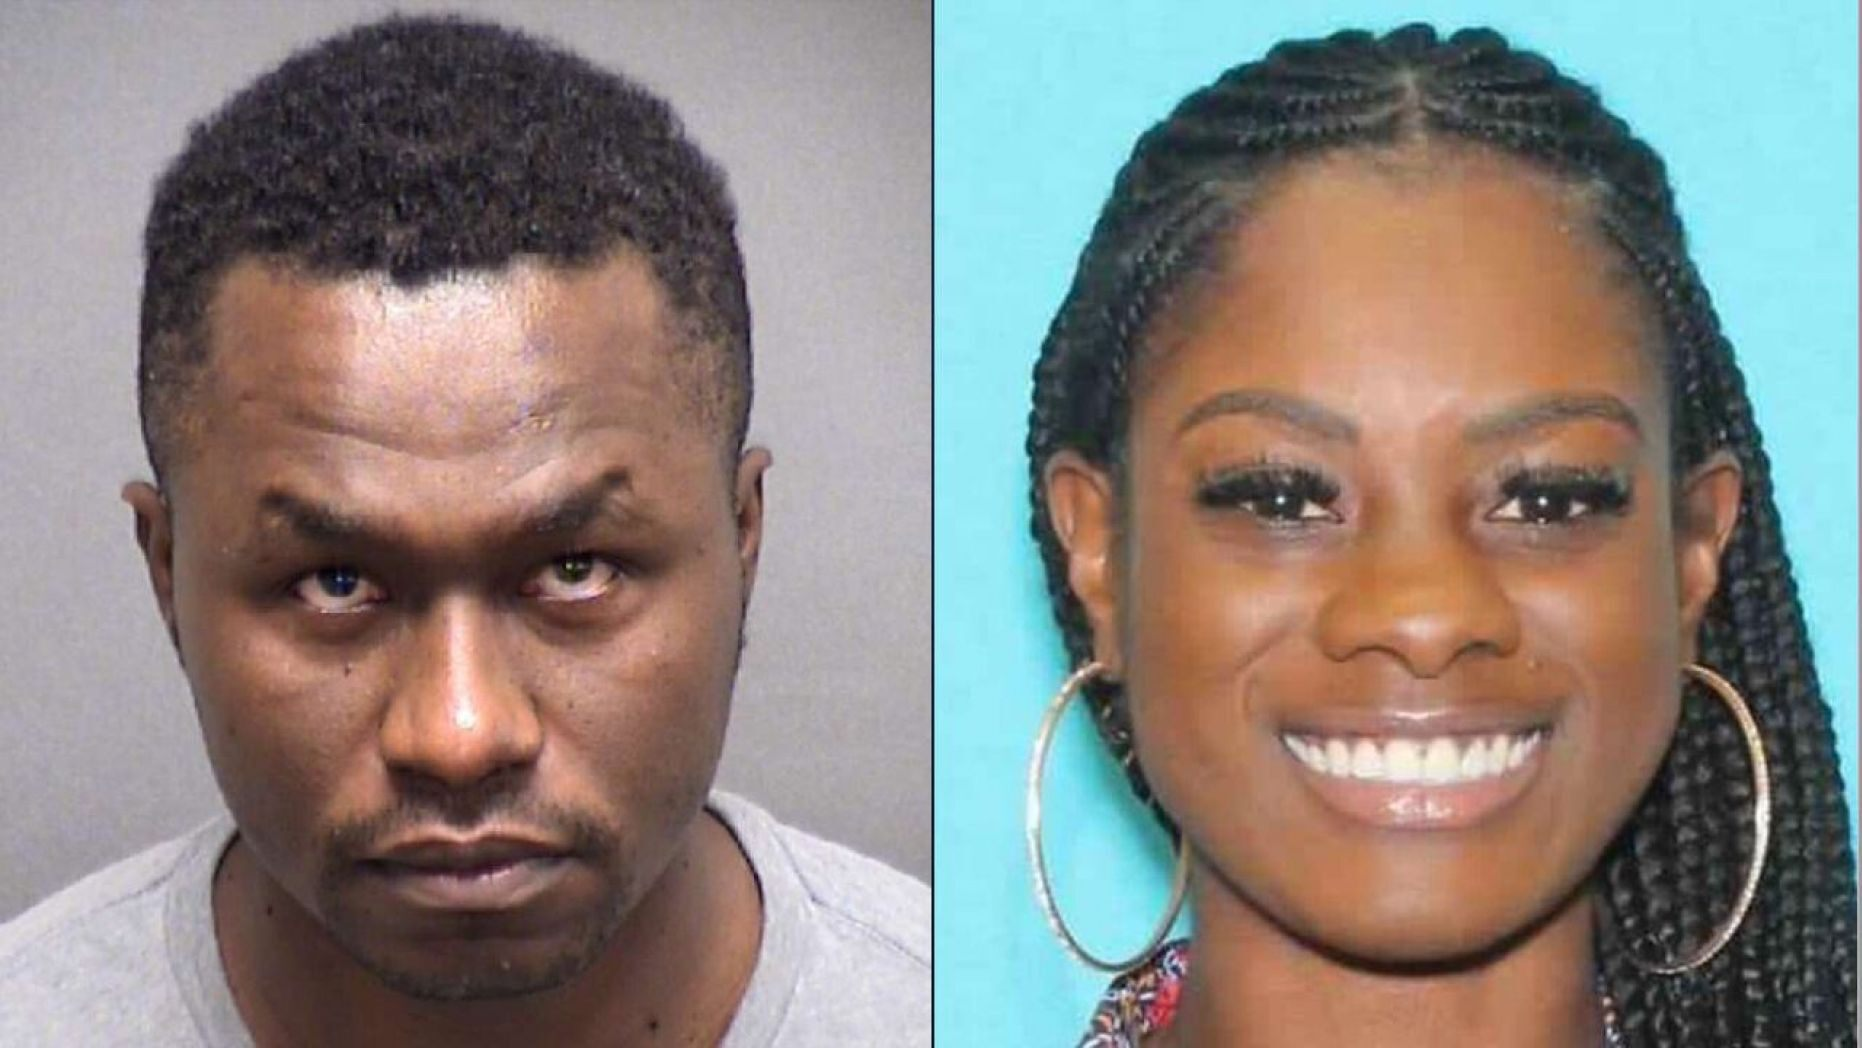 Mugshot, left, for Air Force Maj. Andre McDonald, charged Saturday with murder in the death of his 29-year-old wife